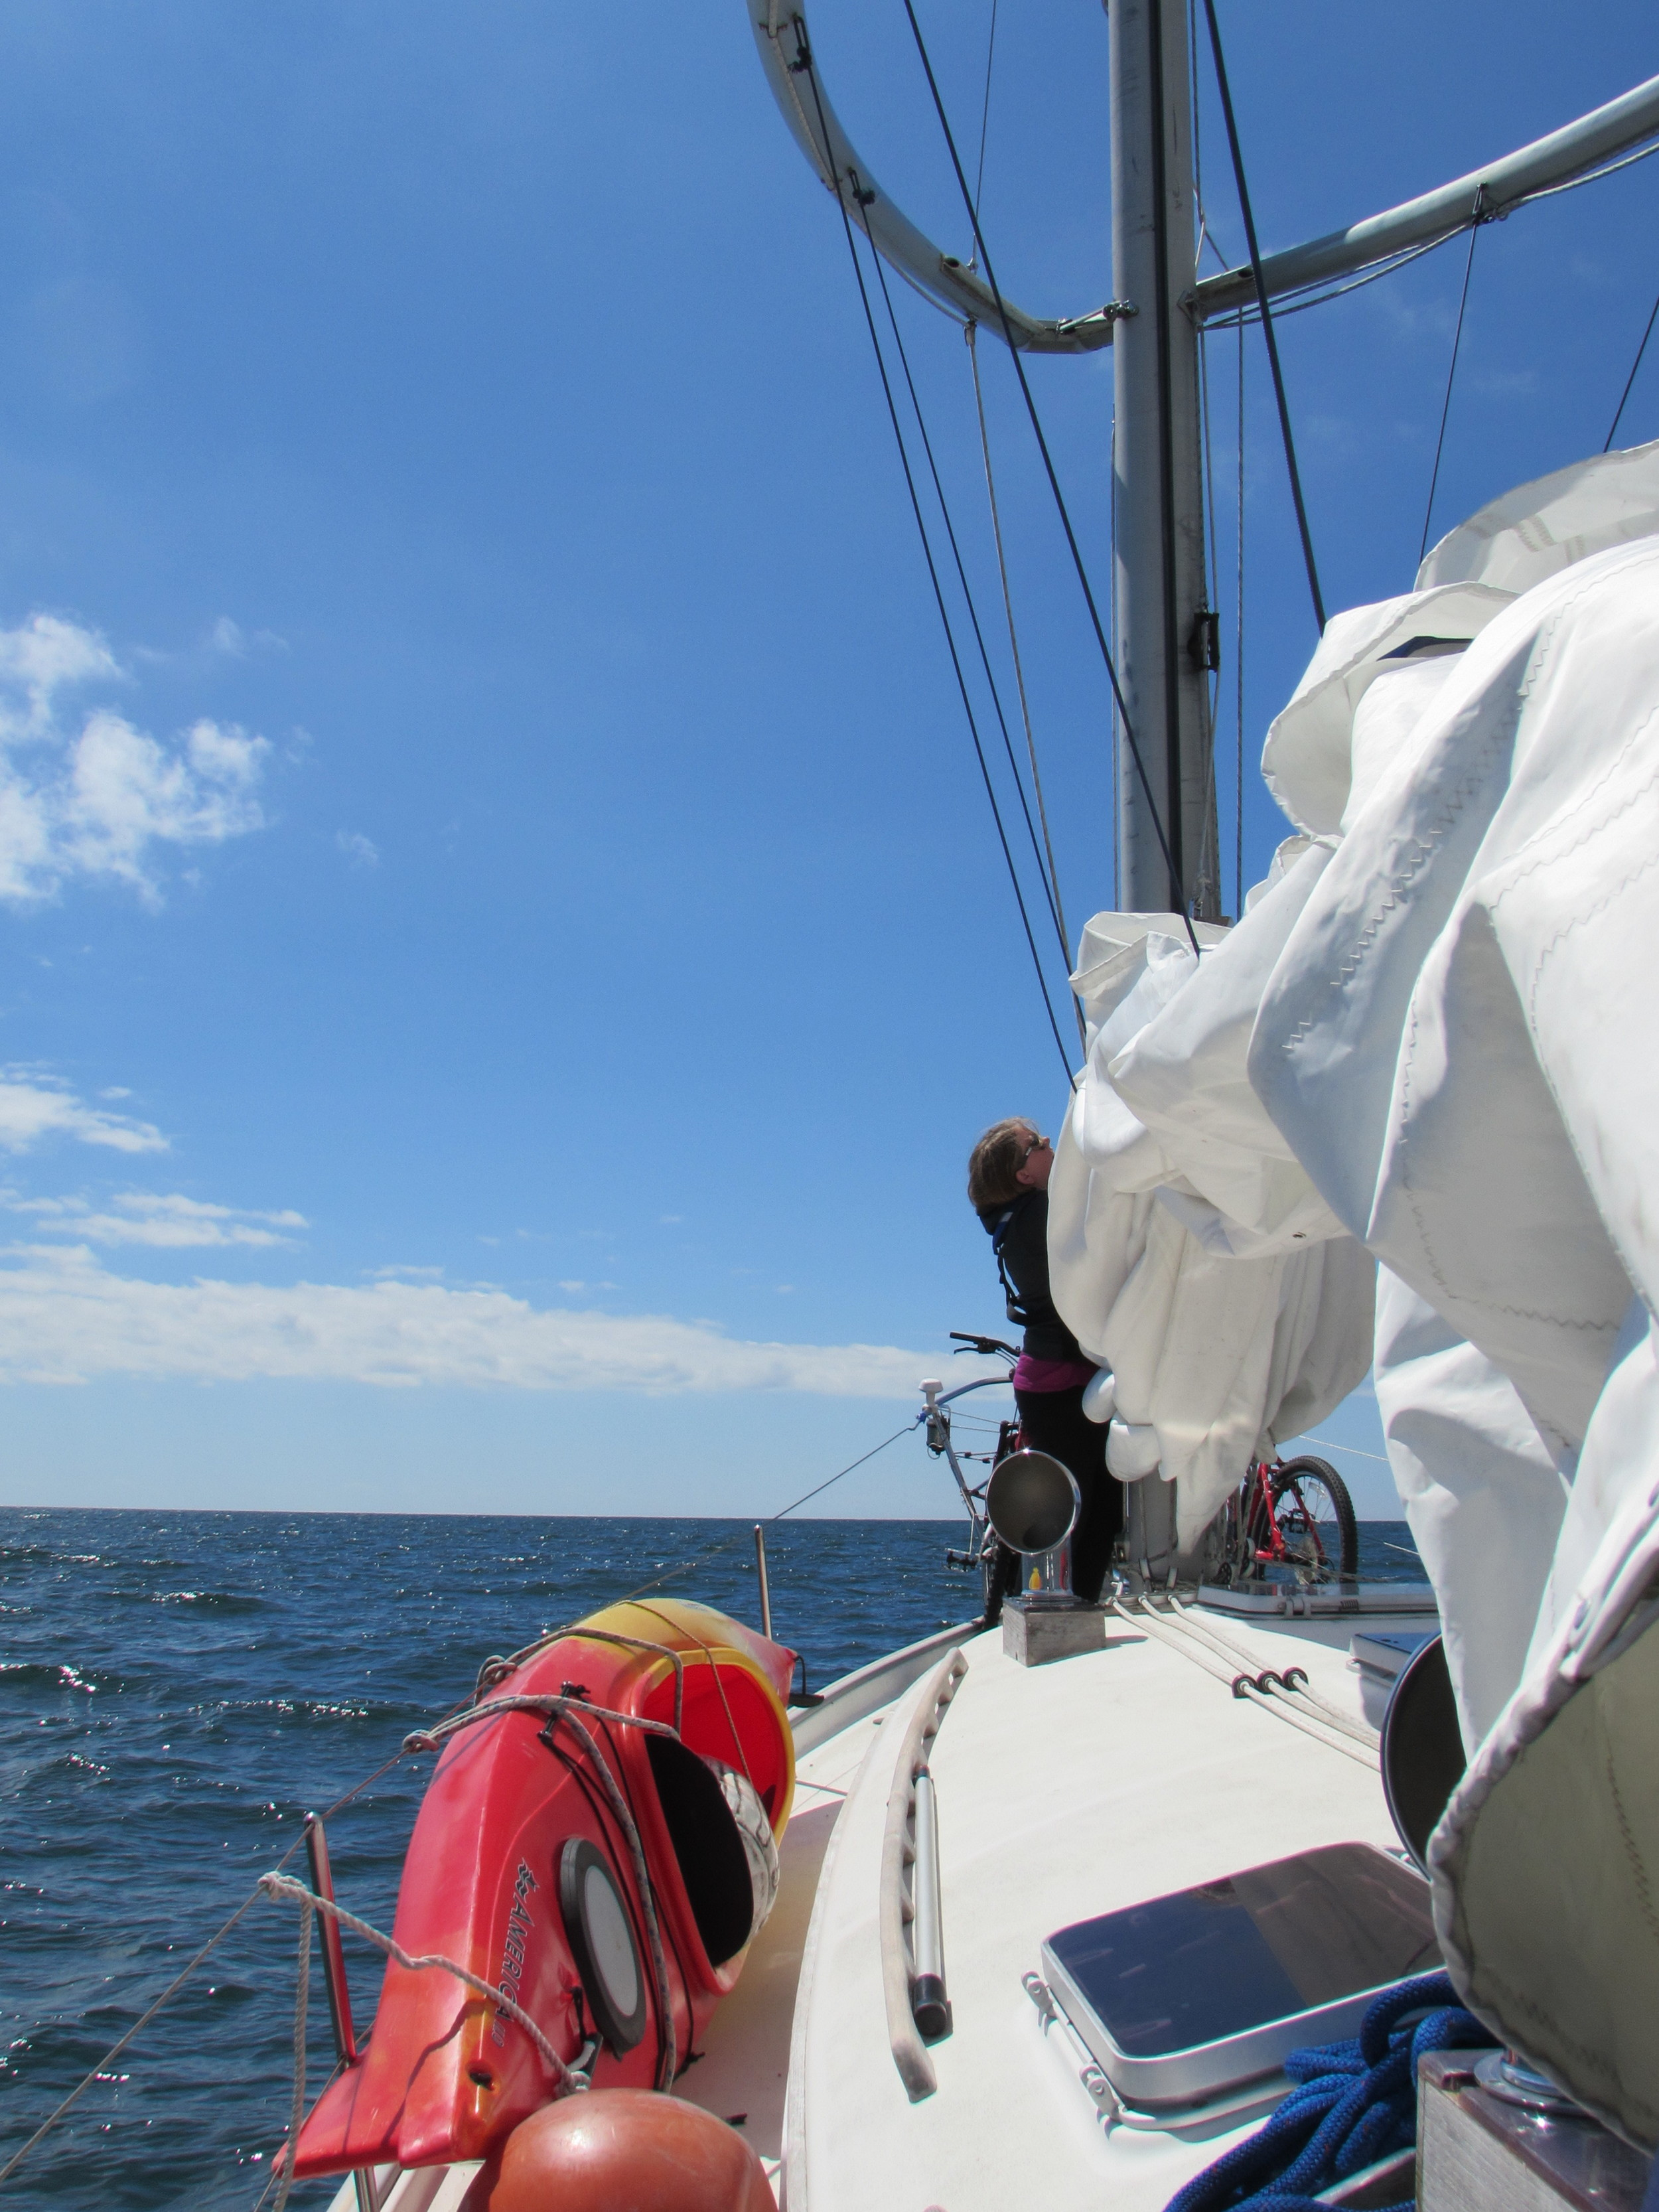 little mishap with the sail cord getting wrapped around the thingy...Mary fixed it.